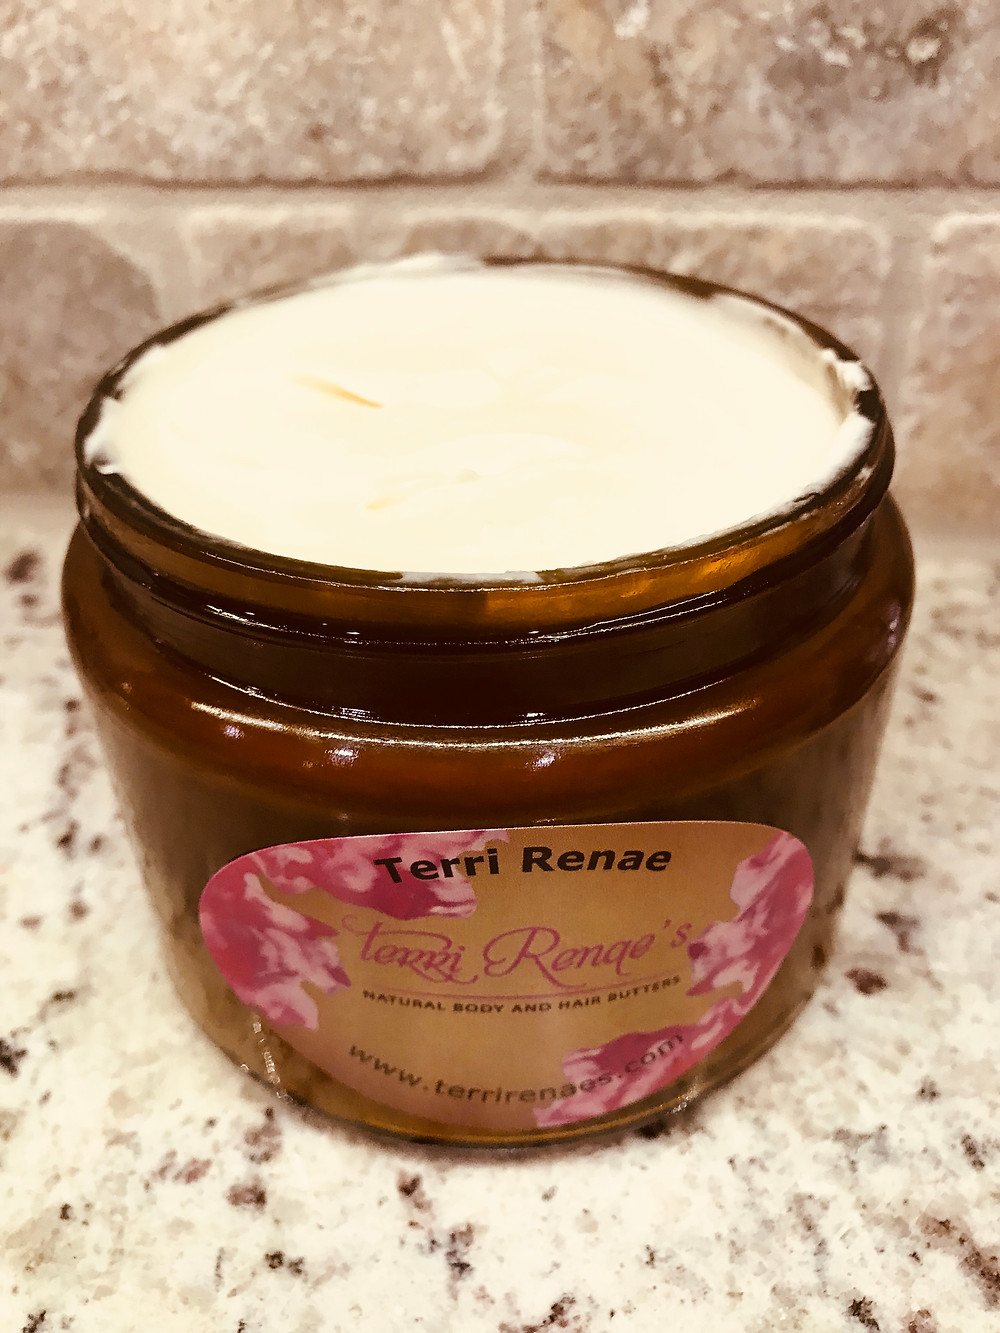 This body butter is full of rich nutrients and antioxidants! All my butters are multi functional all in one jar!!